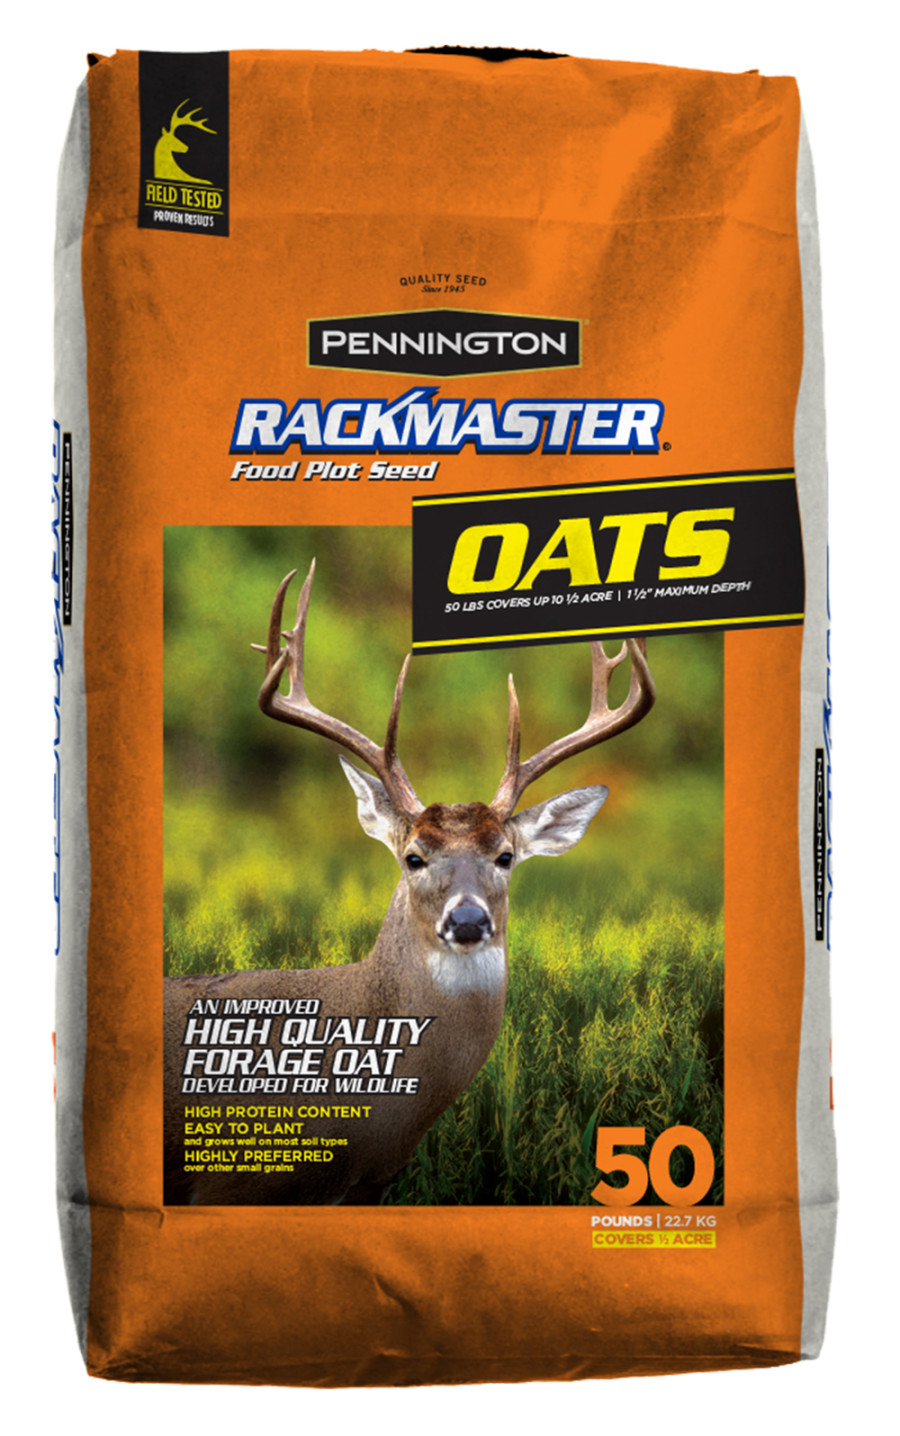 Pennington Rackmaster Food Plot Seed Oats 1ea/50 lb